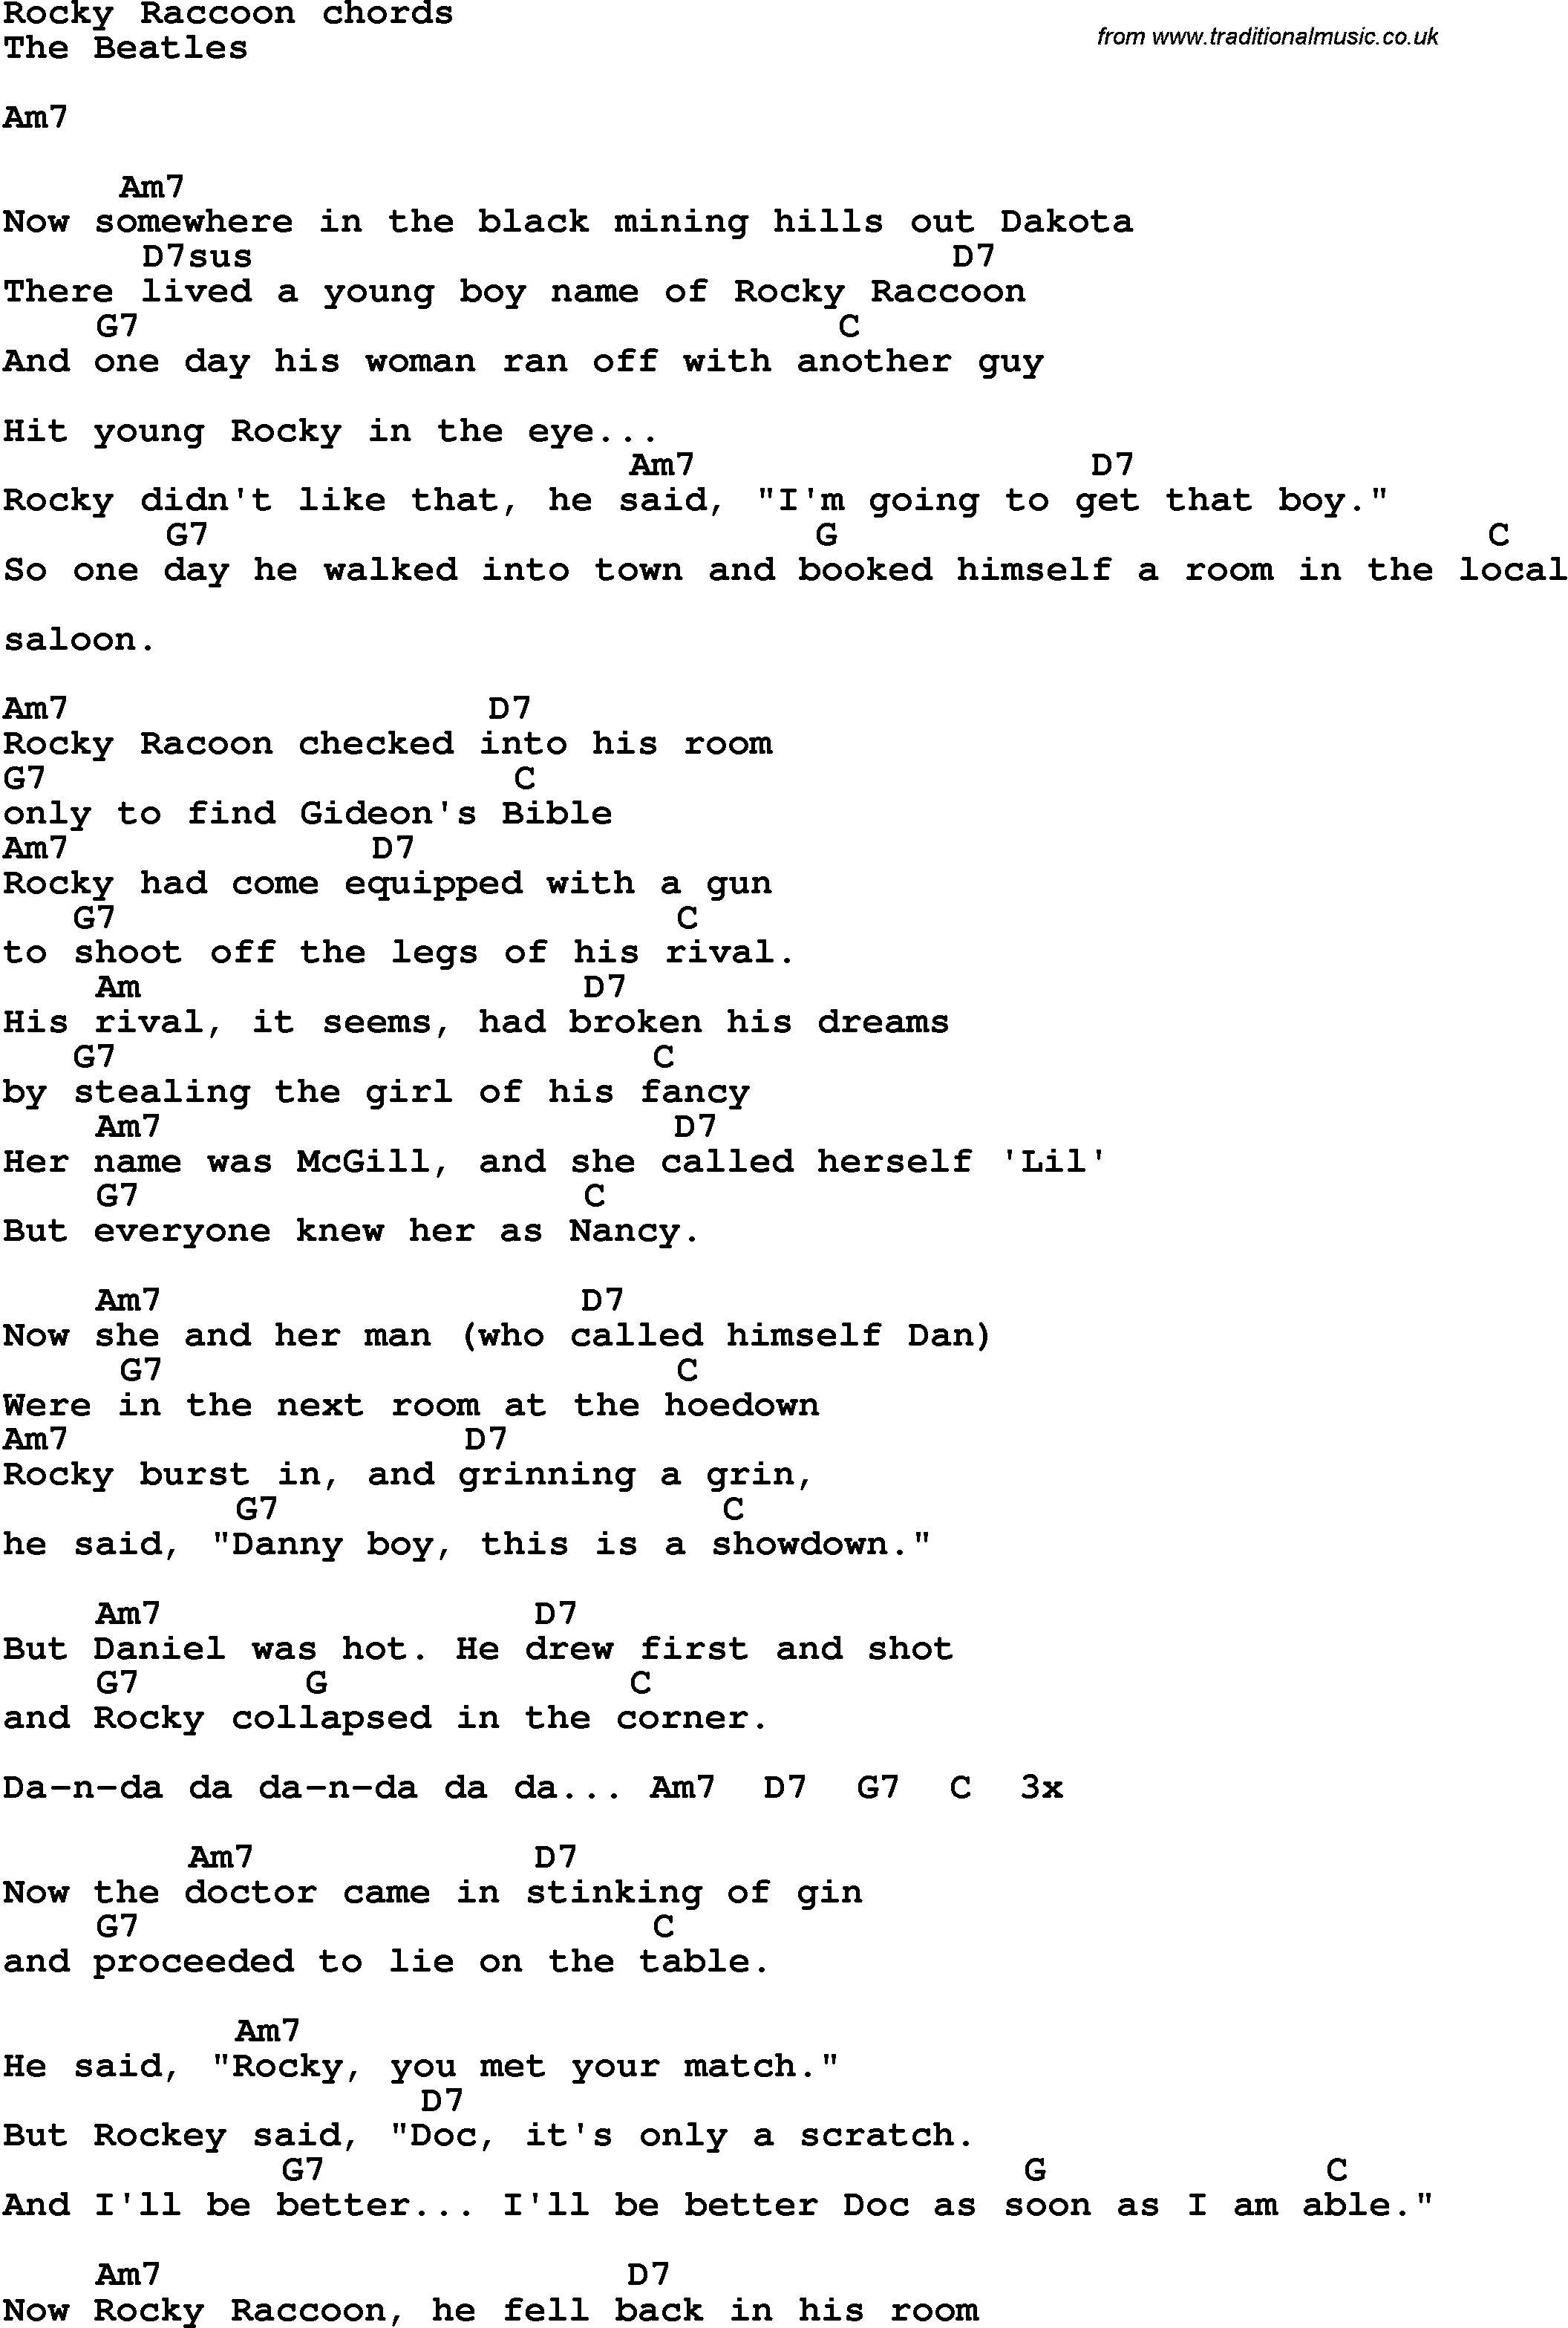 Song Lyrics With Guitar Chords For Rocky Raccoon The Beatles